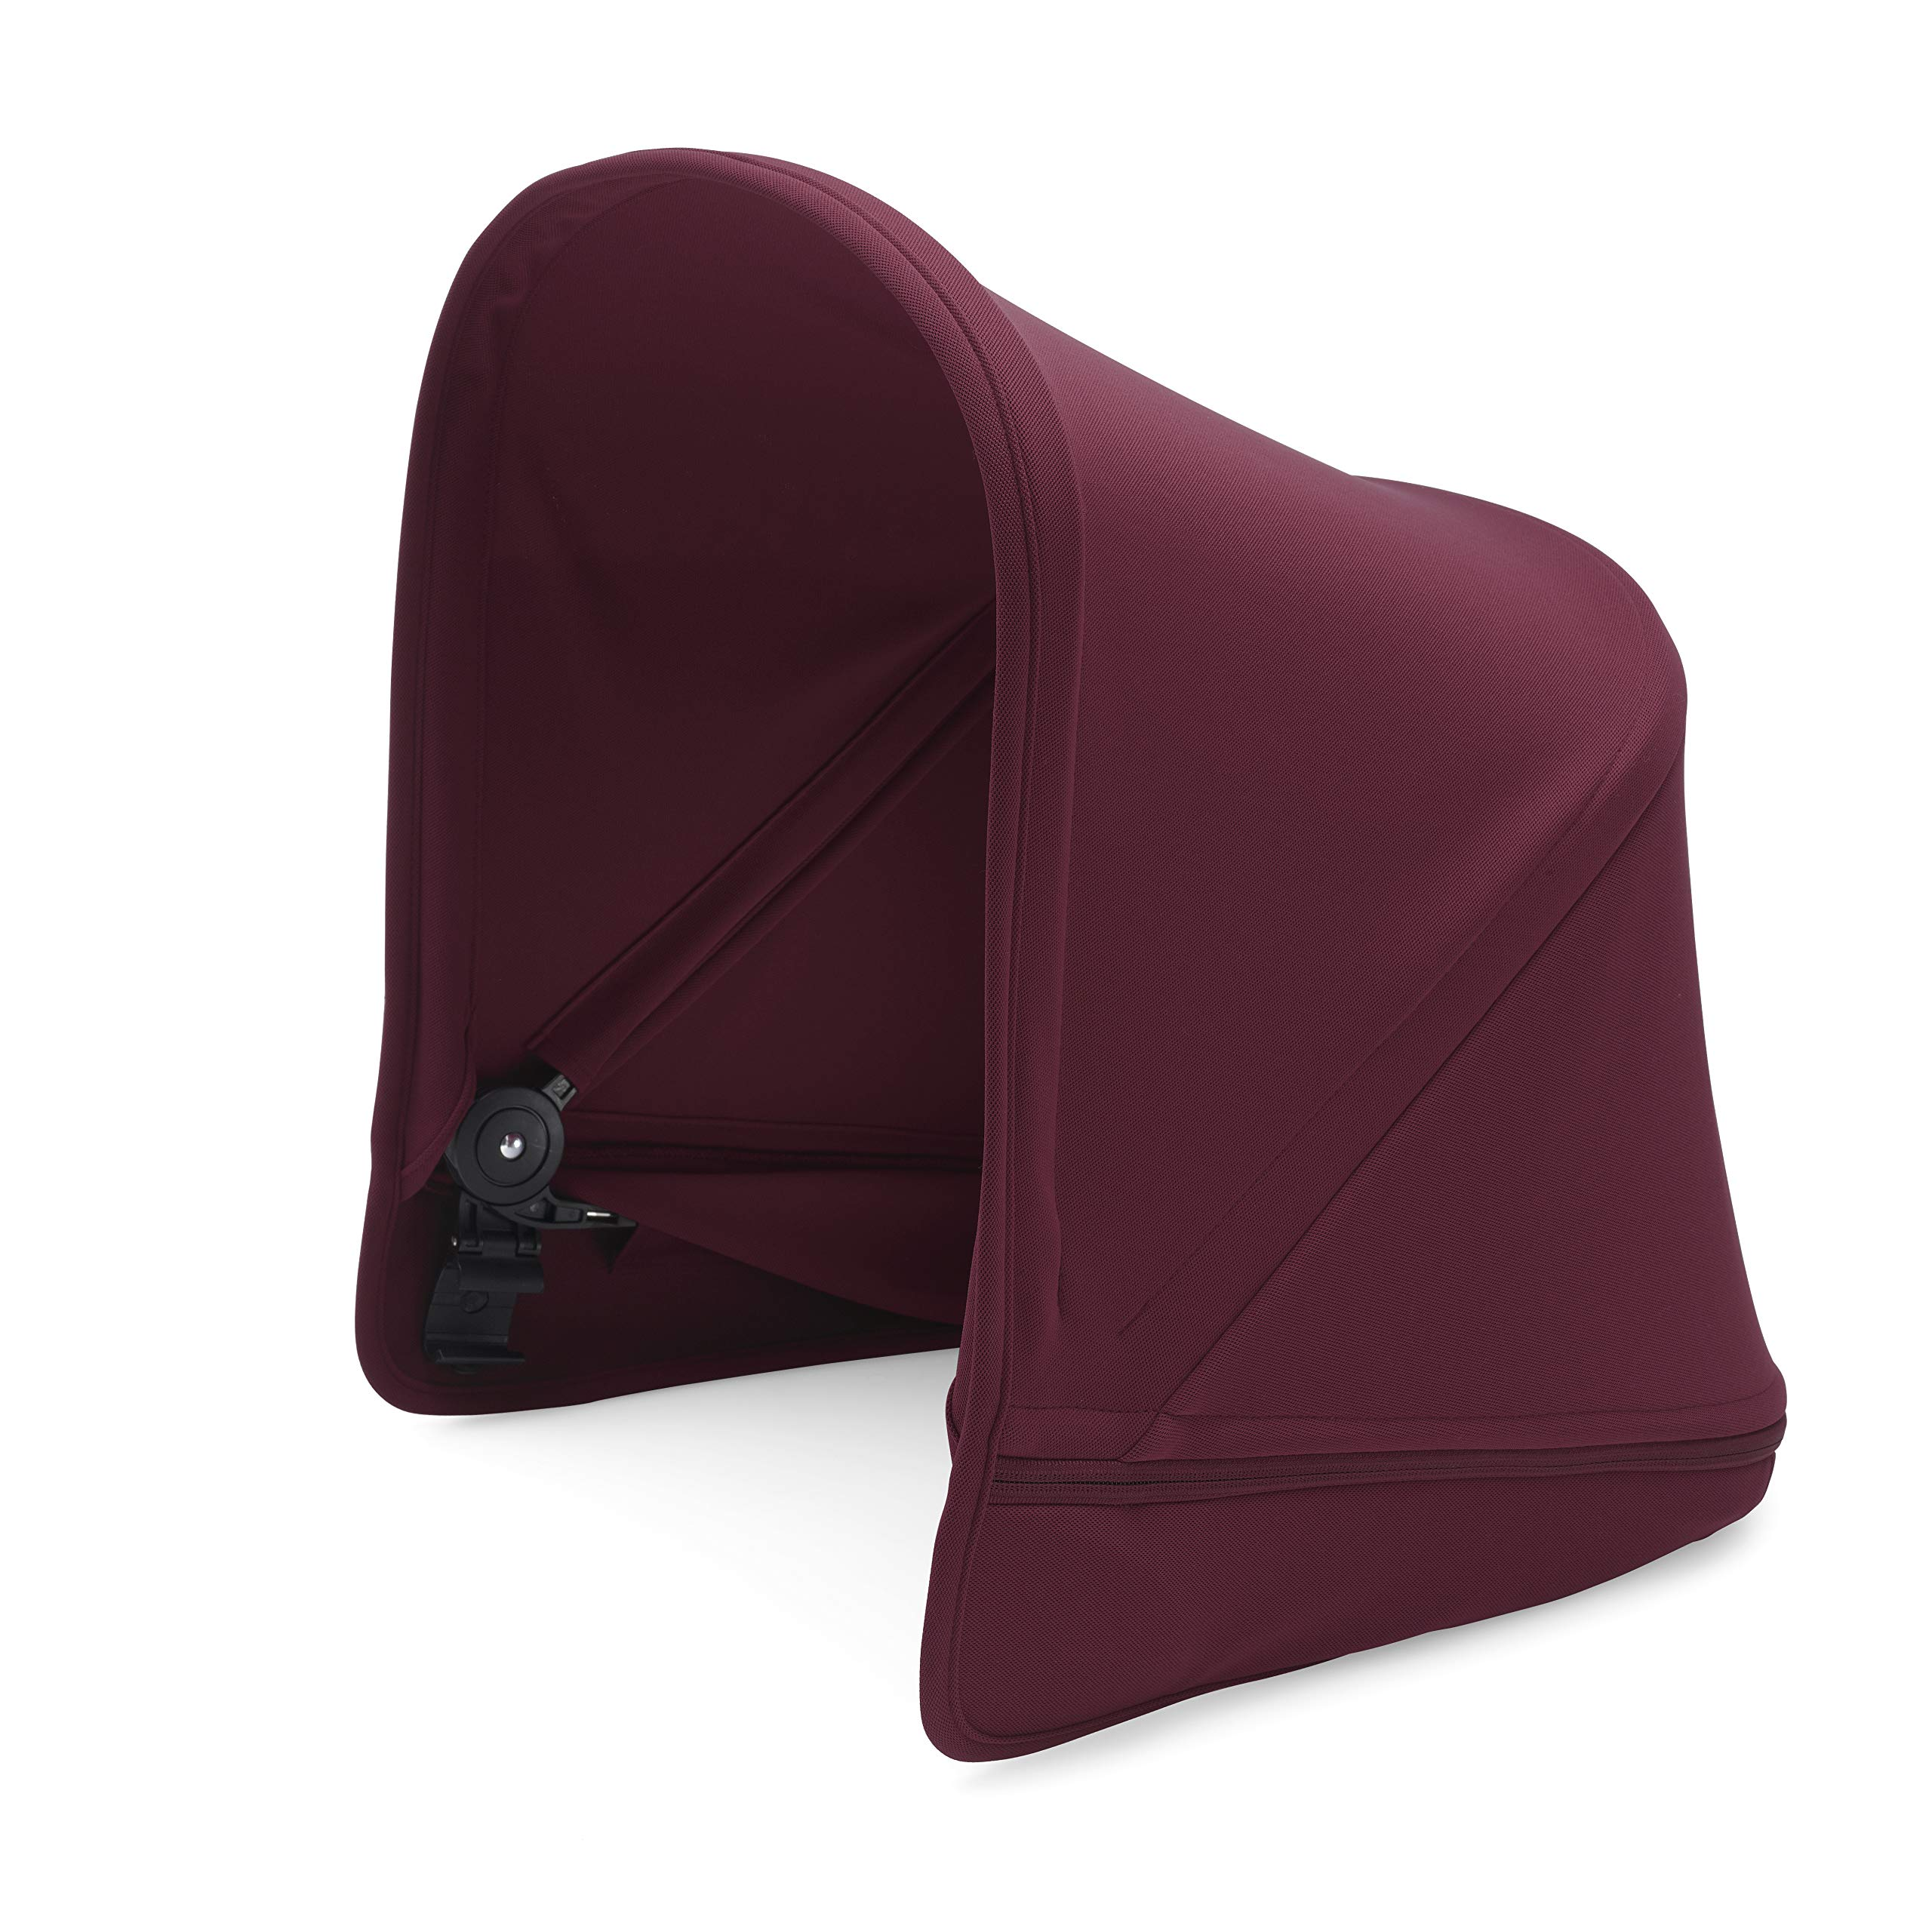 Bugaboo Donkey2 Sun Canopy, Ruby Red - Extendable Sun Shade for Full Weather Protection, Machine Washable